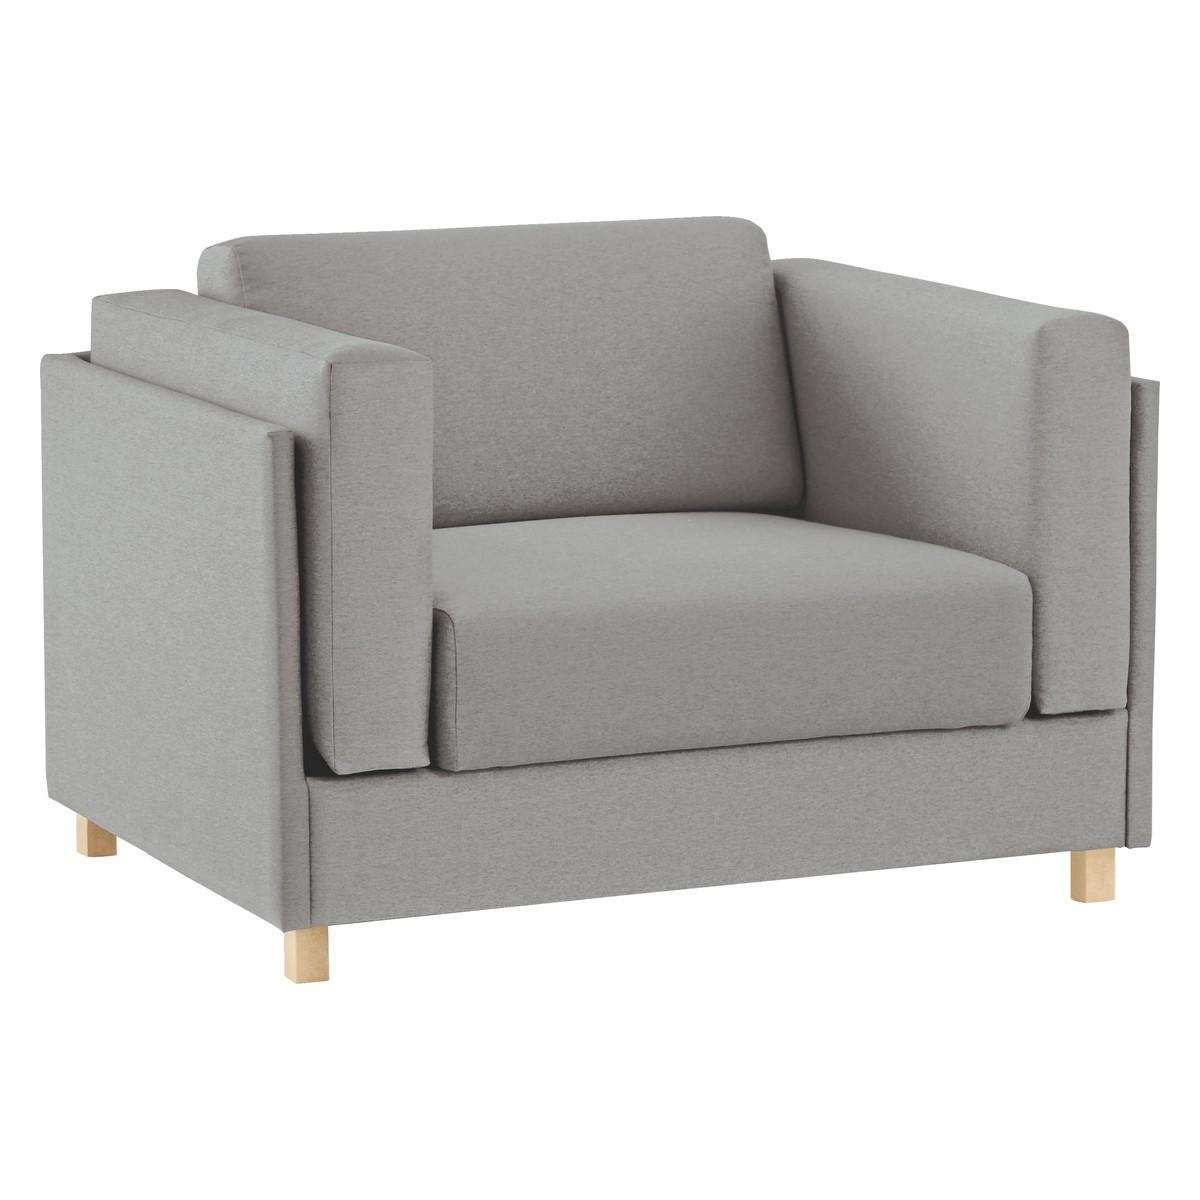 Thompson Sofa Bed – Leather Sectional Sofa With Single Chair Sofa Bed (View 11 of 20)